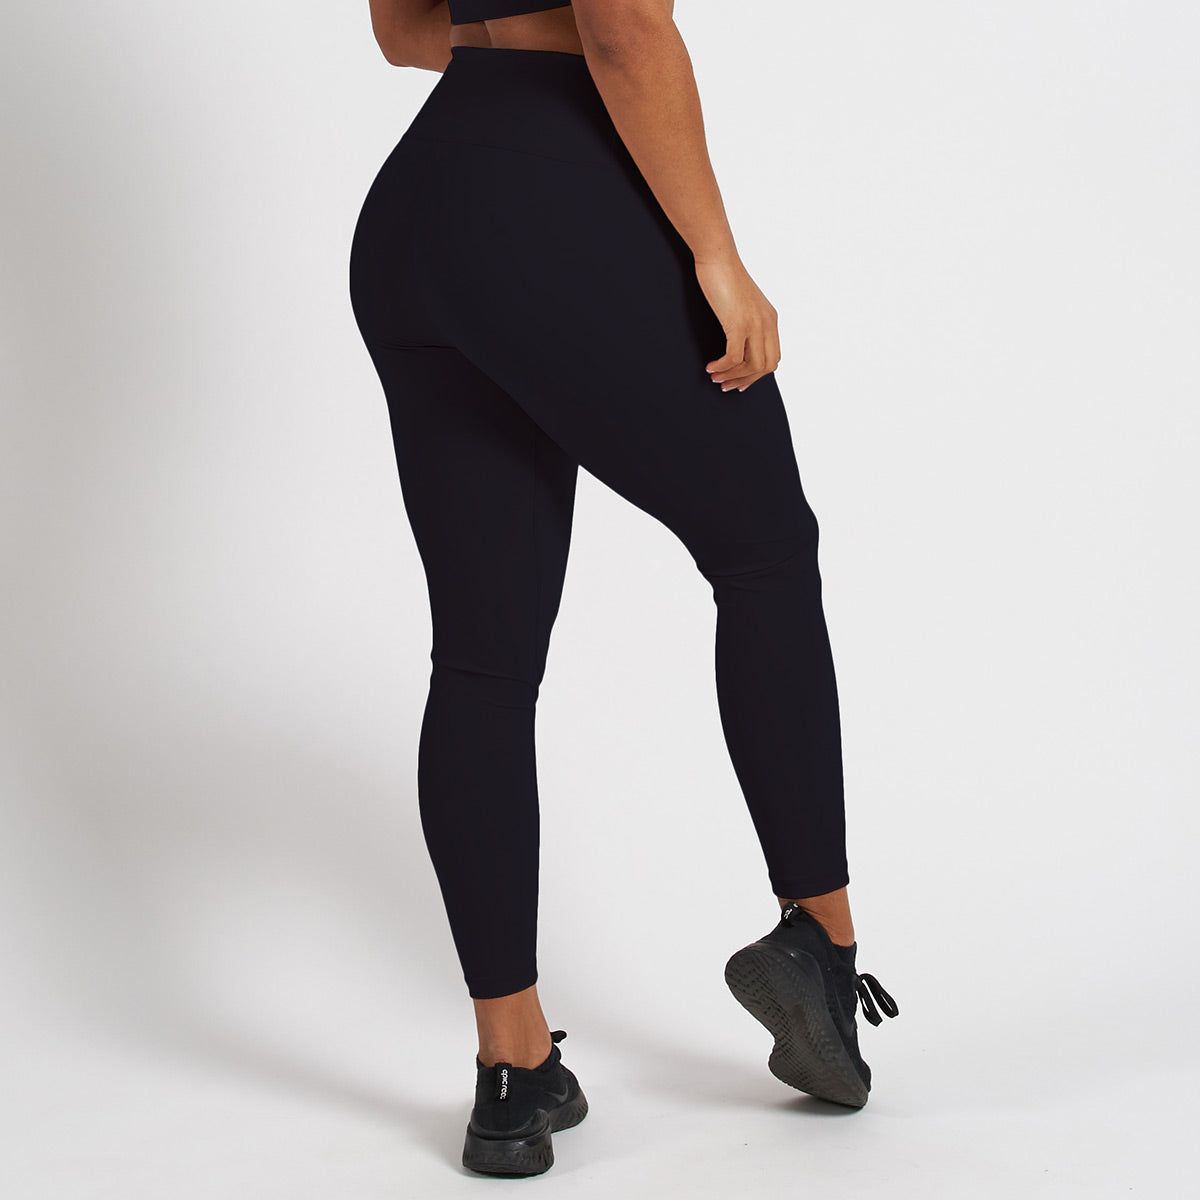 Vanquish Radiate Women's Black Essential Leggings